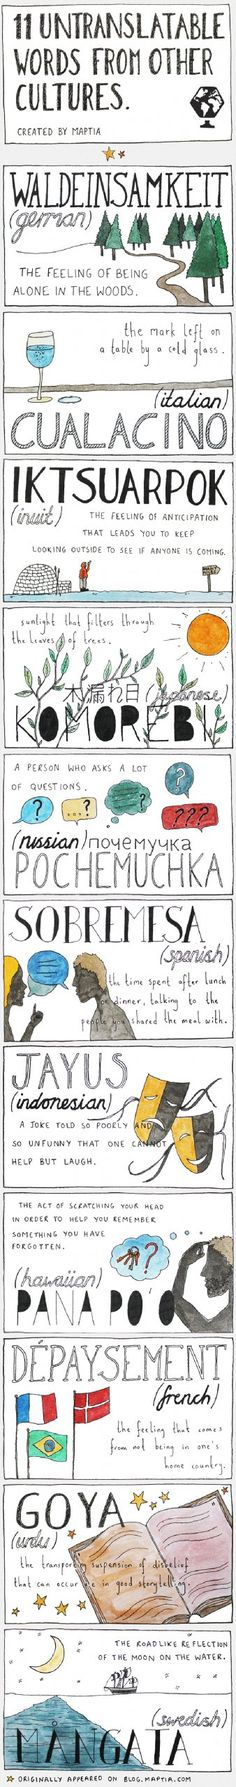 11 untranslatable words infographic